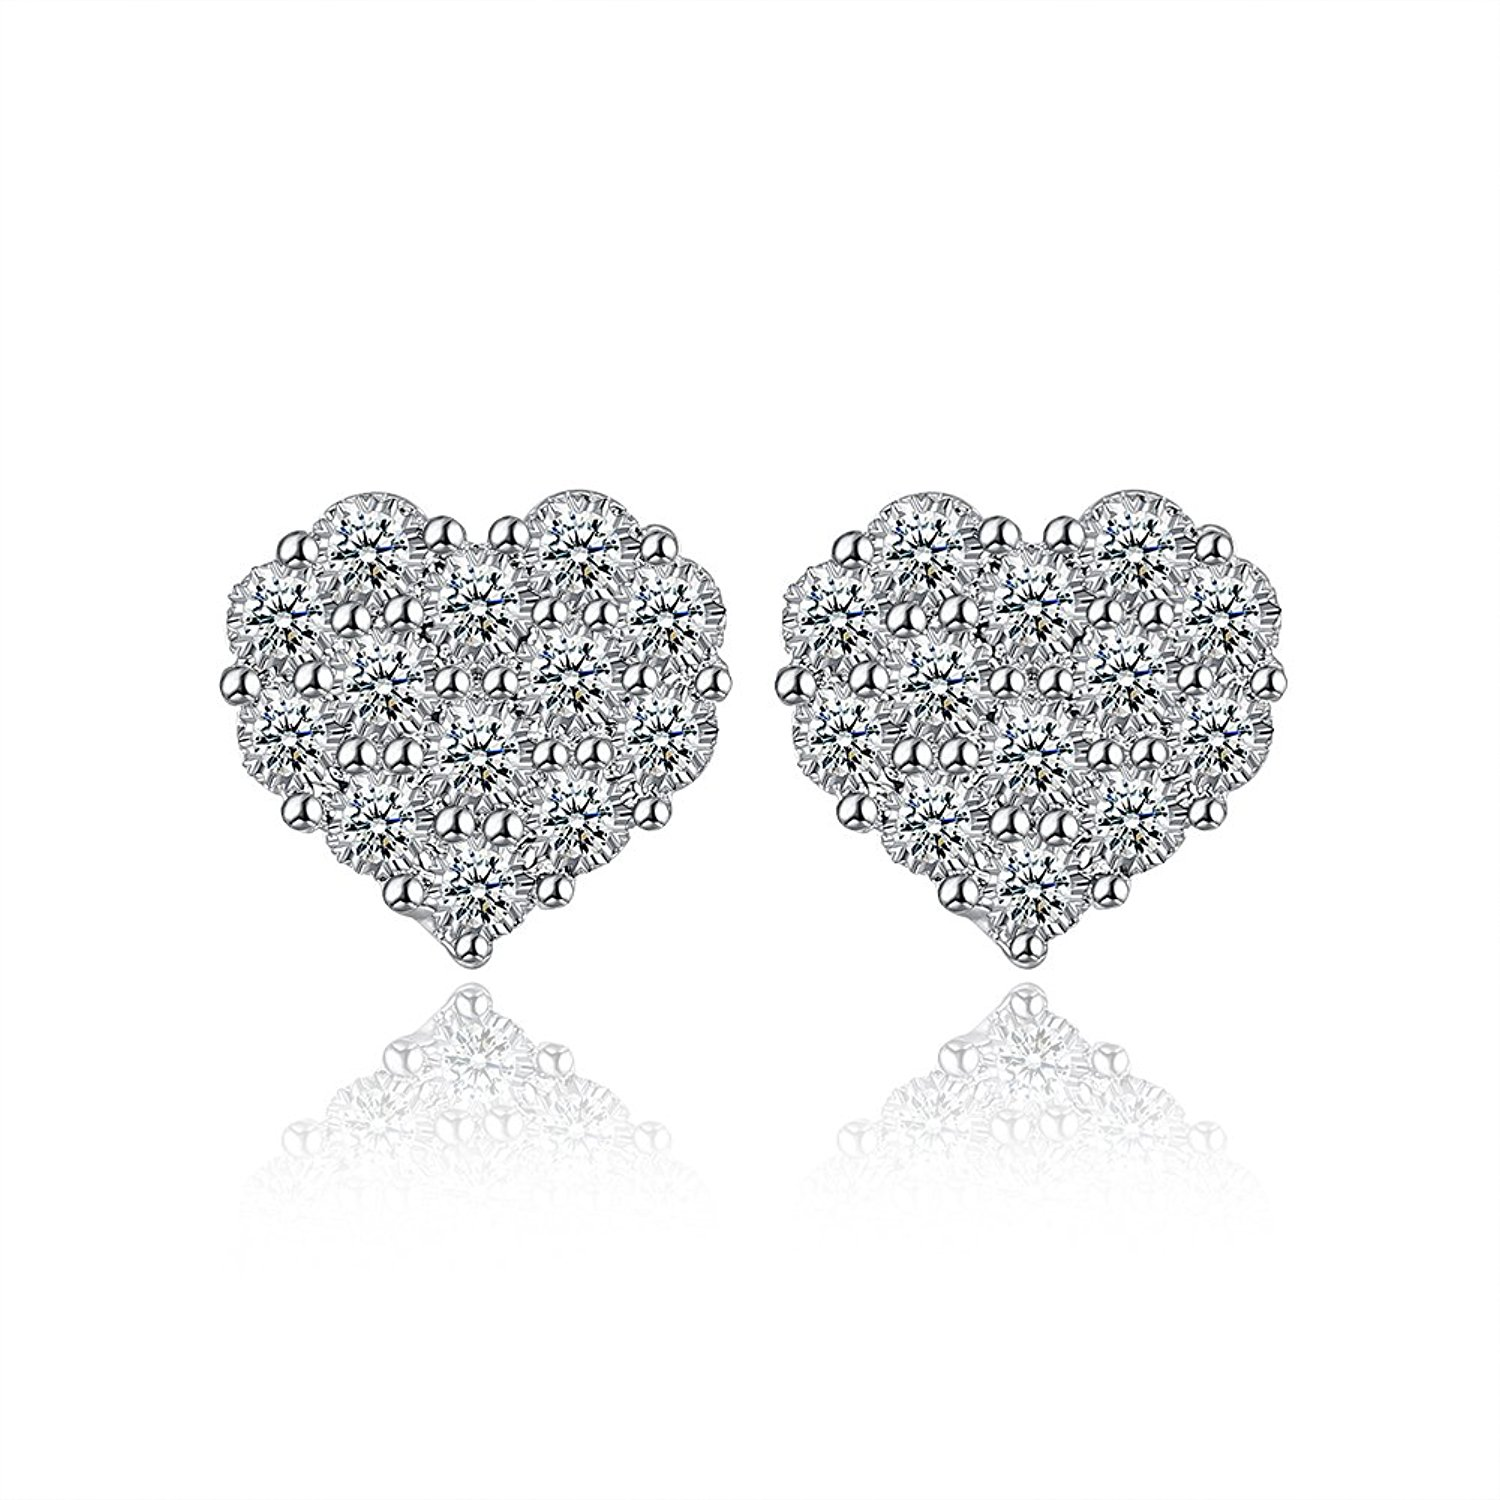 Heart Earrings Hypoallergenic Studs Open Heart Stud Earrings for Women Girls